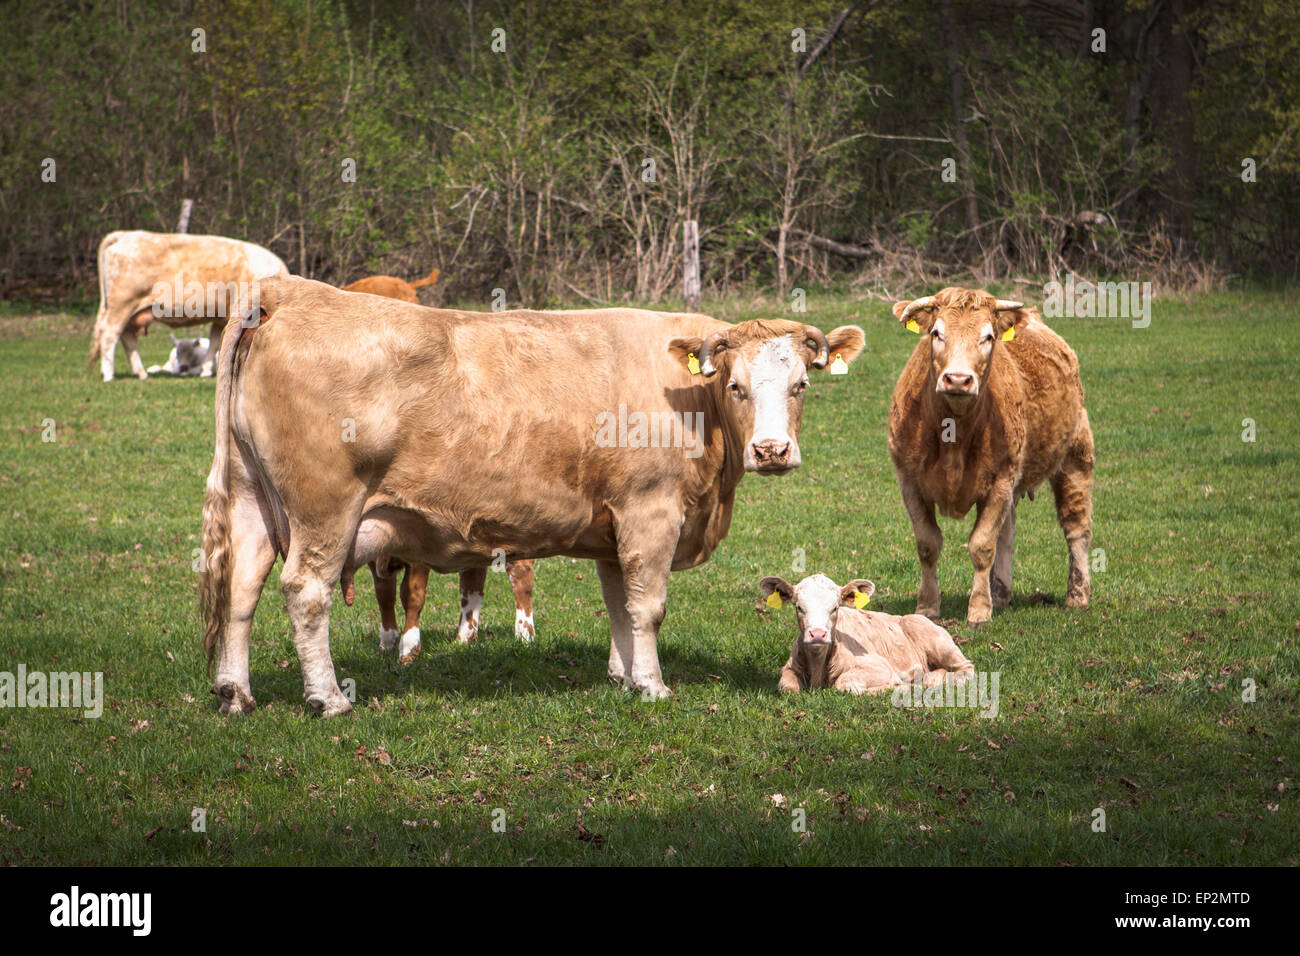 Germany, cows and calves on a meadow - Stock Image